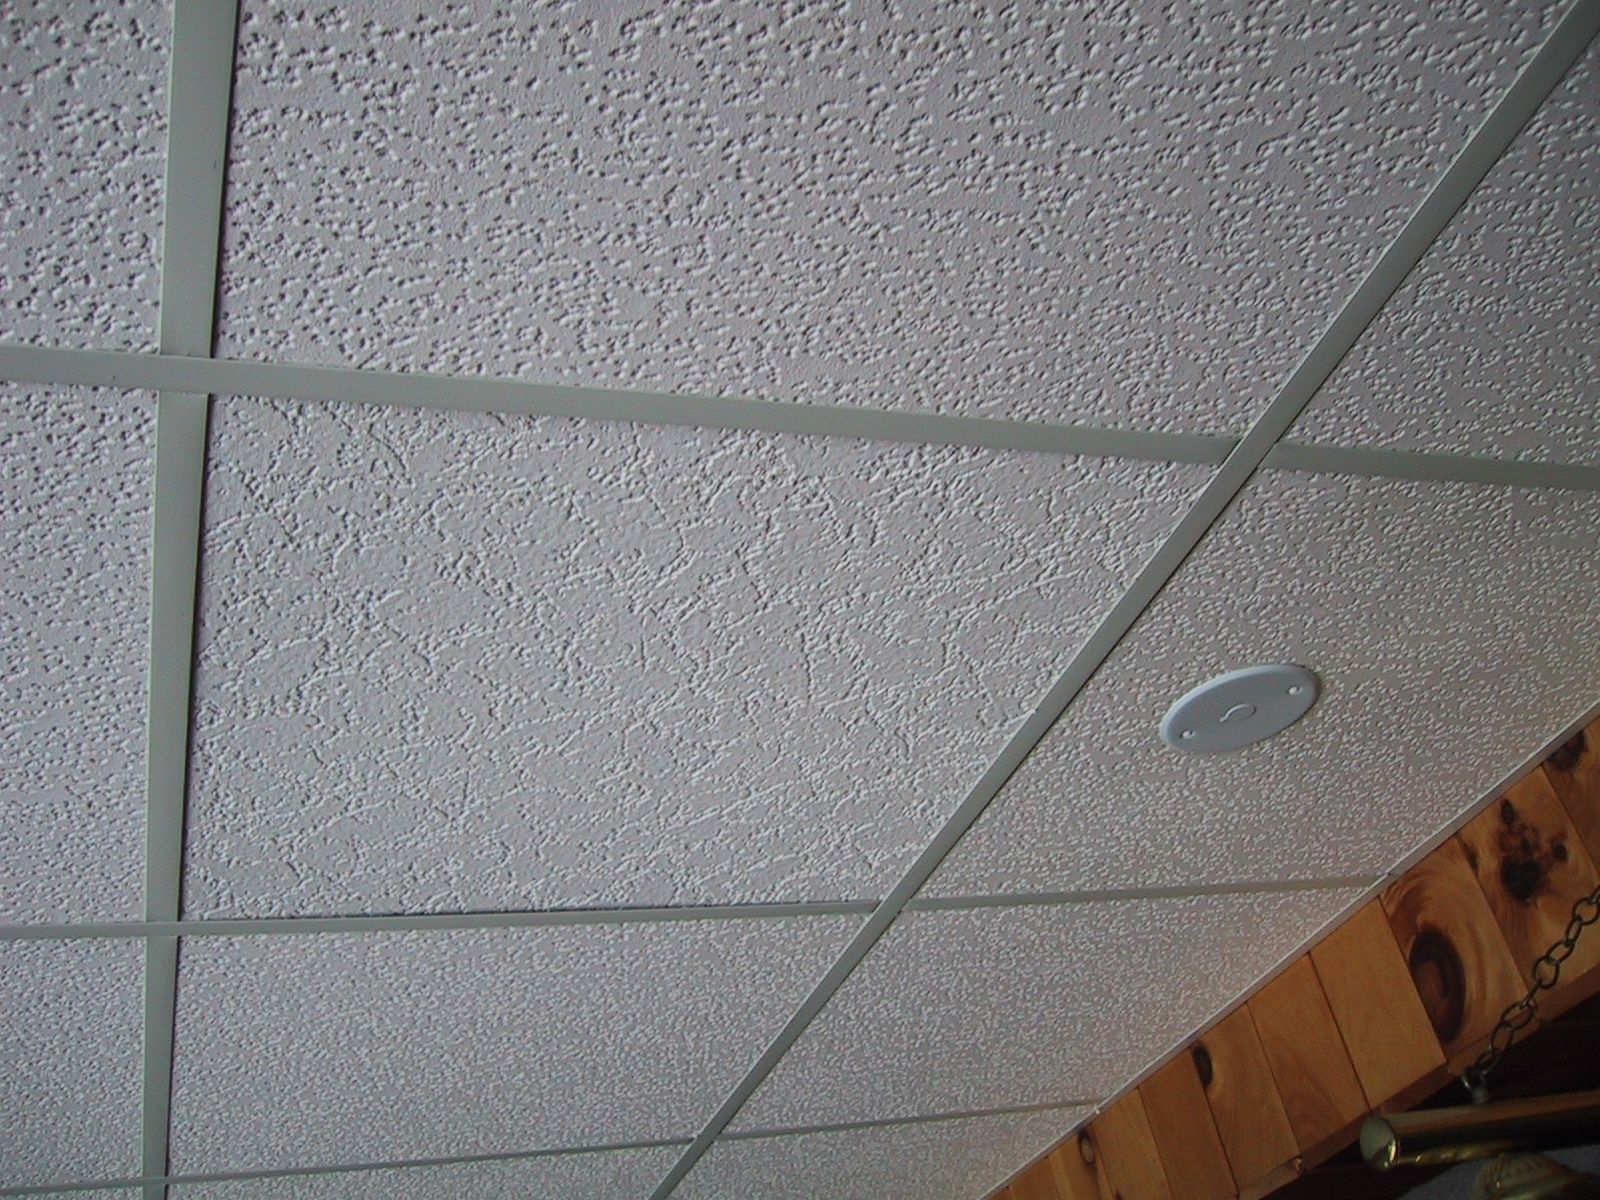 1616 interlocking ceiling tiles httpcreativechairsandtables 1616 interlocking ceiling tiles dailygadgetfo Gallery